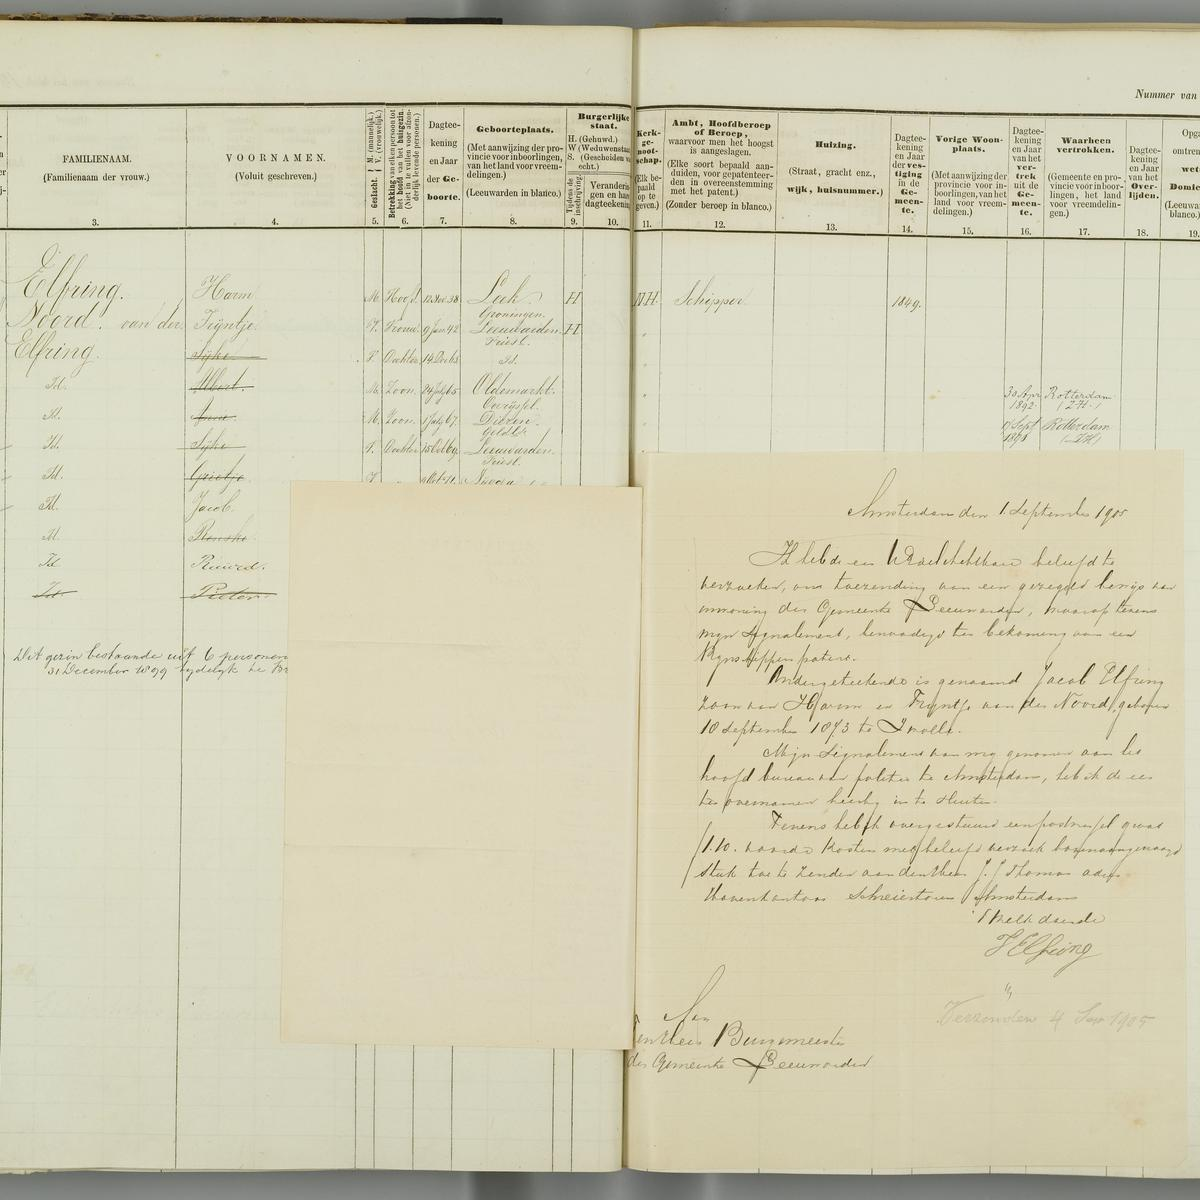 Civil registry, Leeuwarden, 1876-1904, sheet 180 (left, with note about Jacob Elfring)